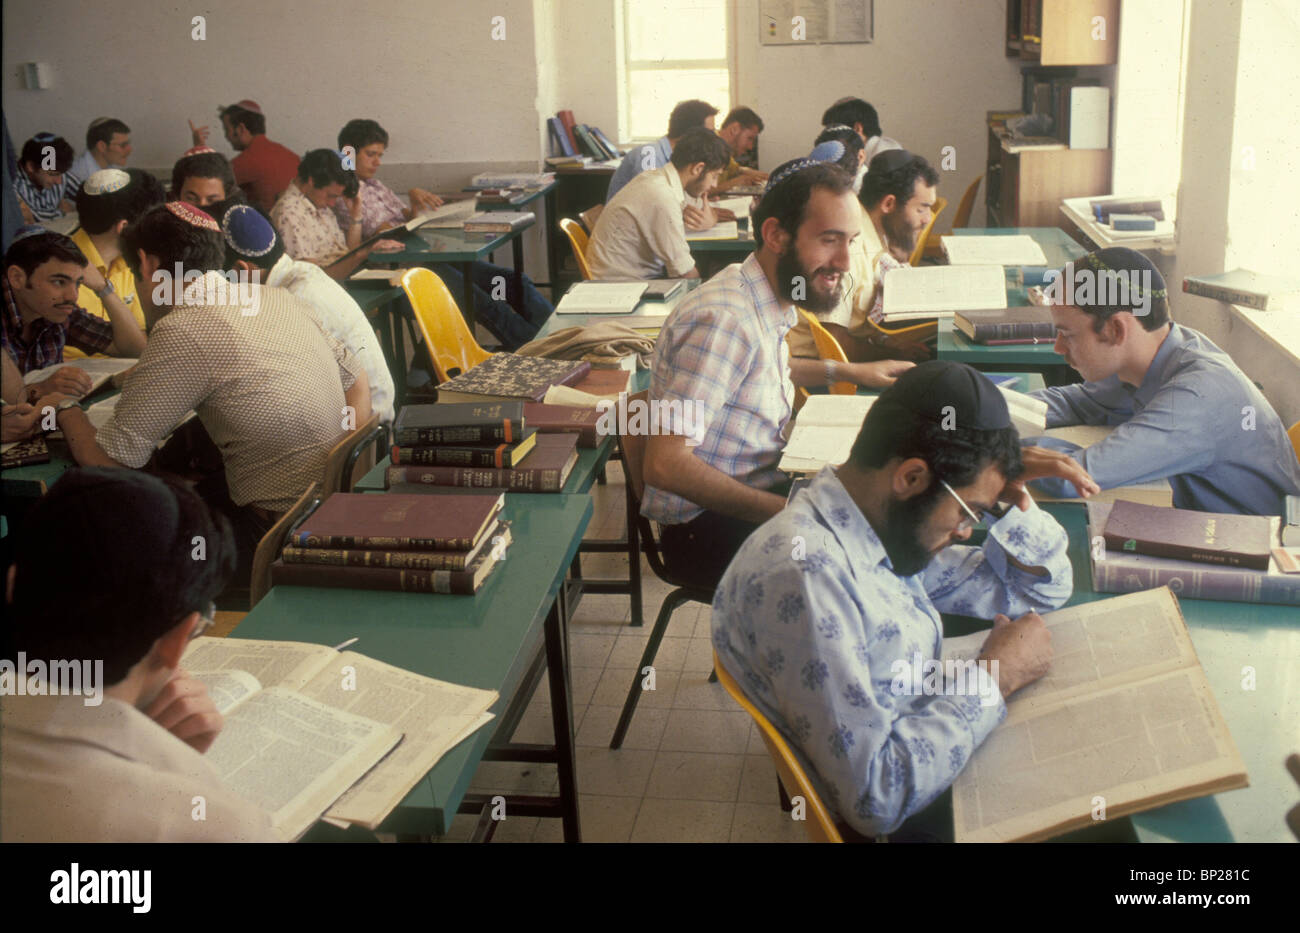 1760. STUDYING THE BIBLE RELATED SCRIPTURES IN A JERUSALEM YESHIVAH - Stock Image